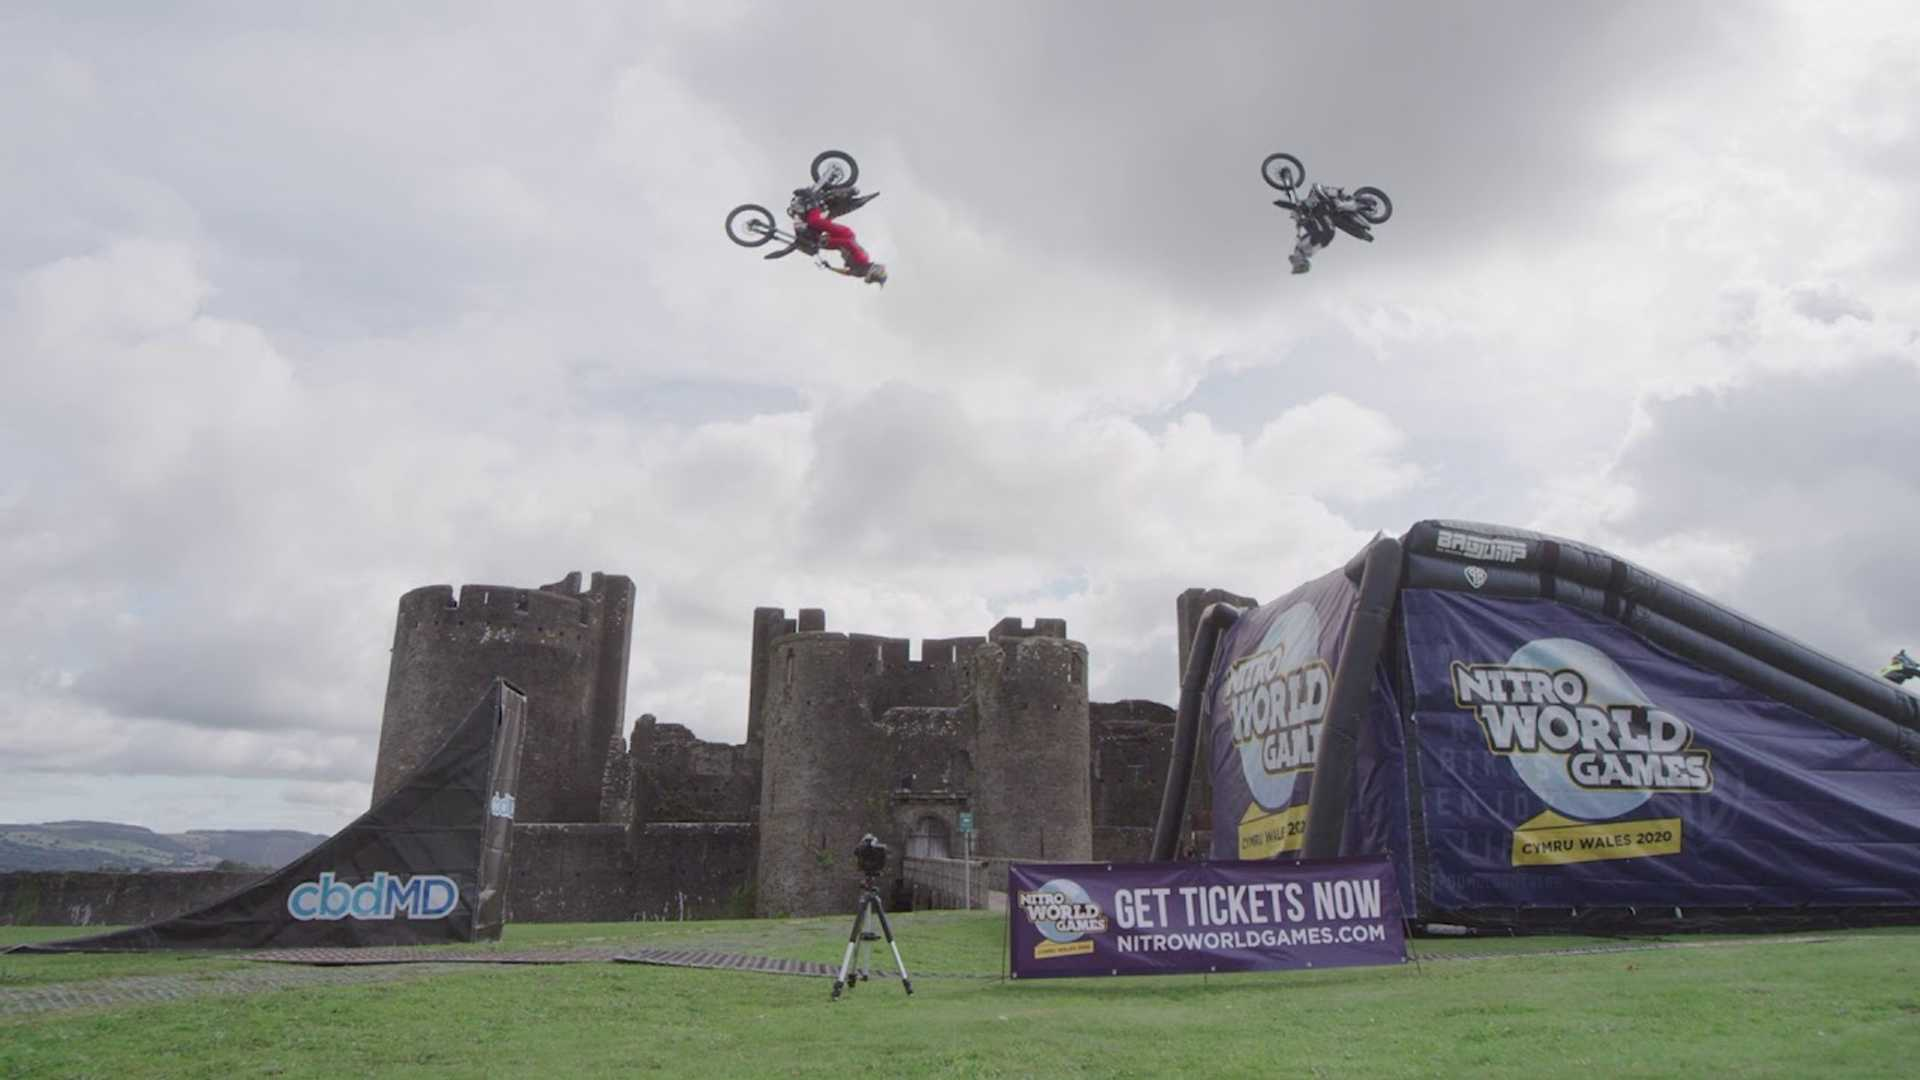 Watch Three World-Class Motocrossers Land Double Backflips Together